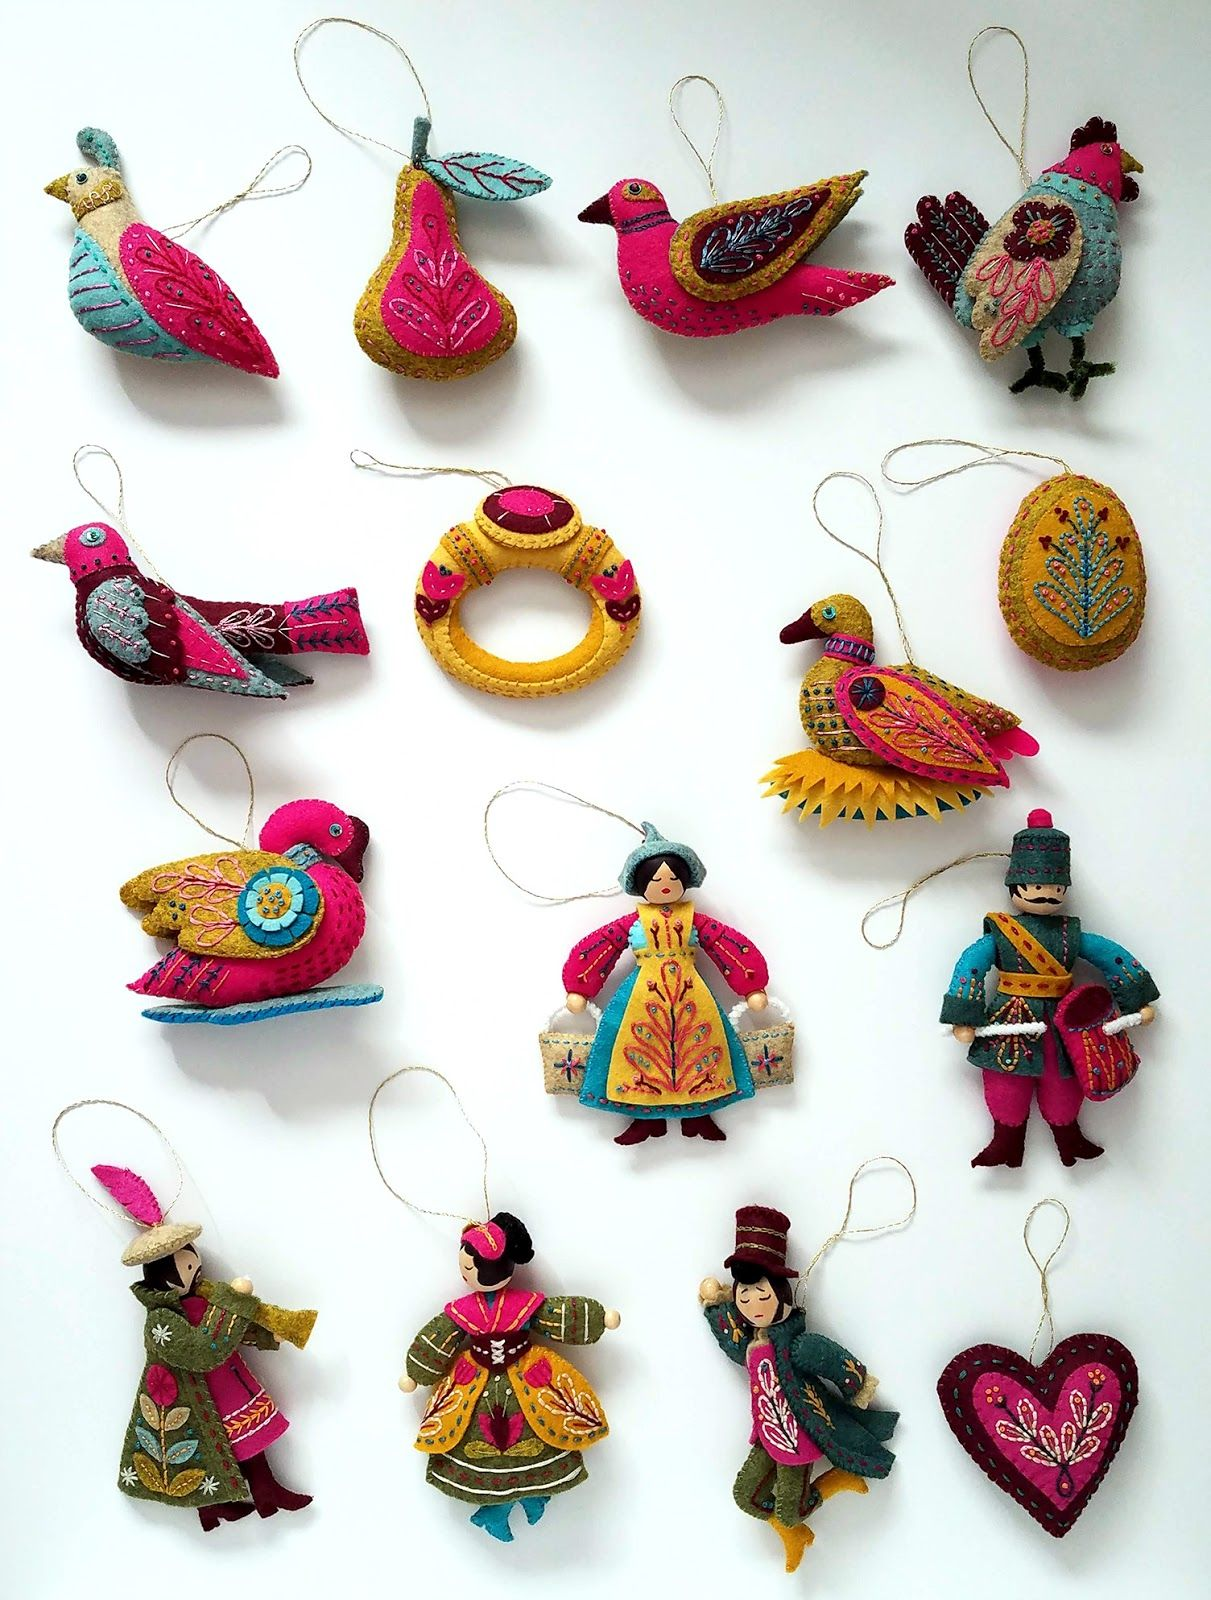 Finished 12 Days of Christmas ornaments pattern by